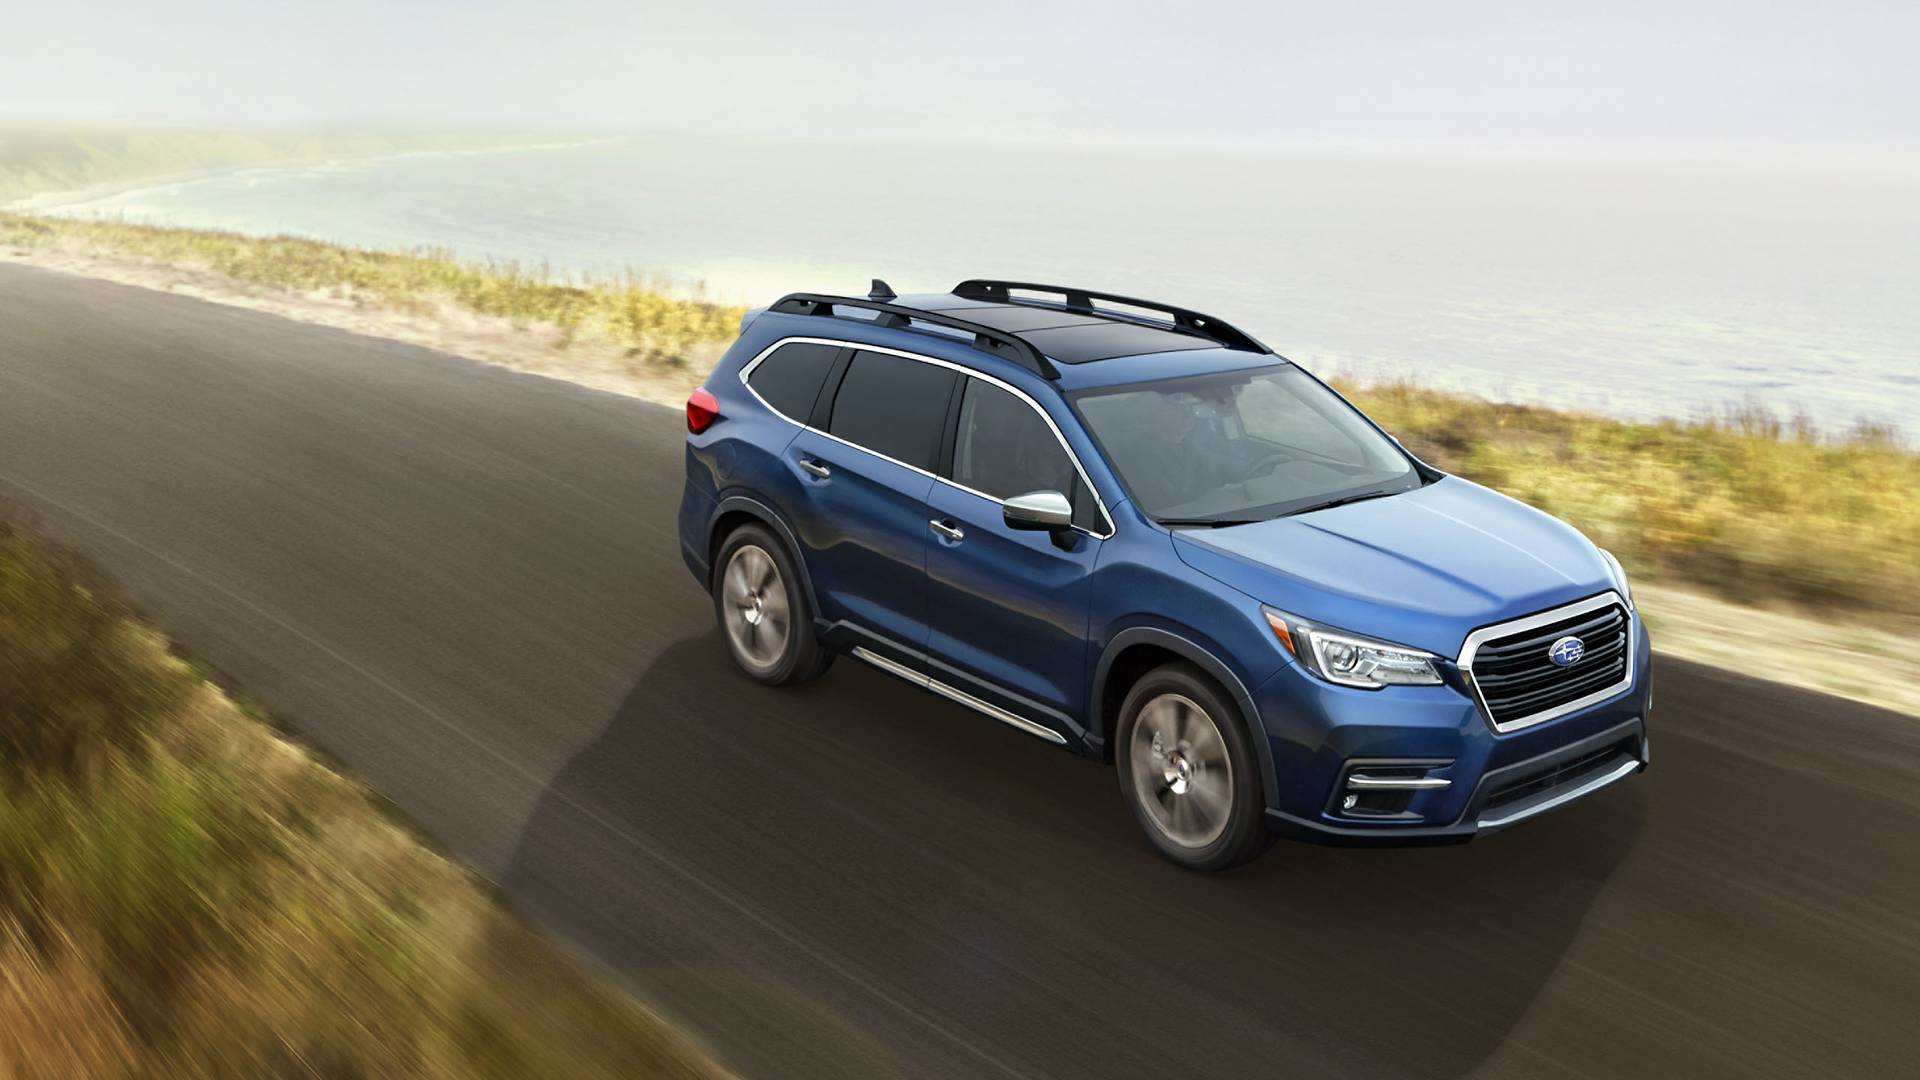 2019 Subaru Ascent Arrives With New Turbo Engine Seating For 8 Powertrain Diagram